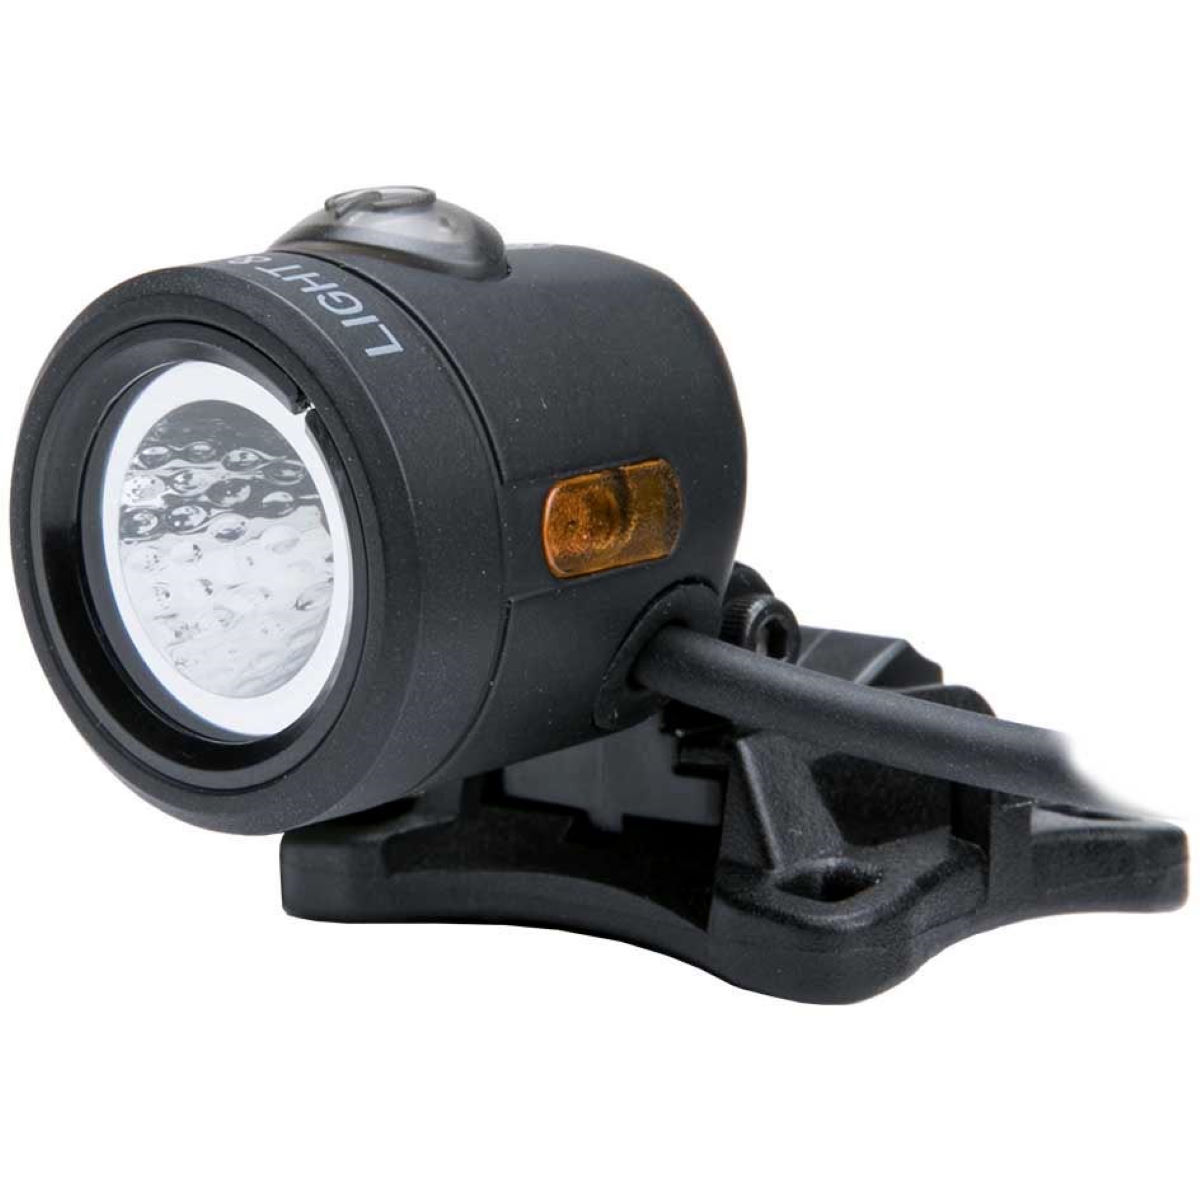 Eclairage Light & Motion Vis 360 Pro 600 - One Size Noir